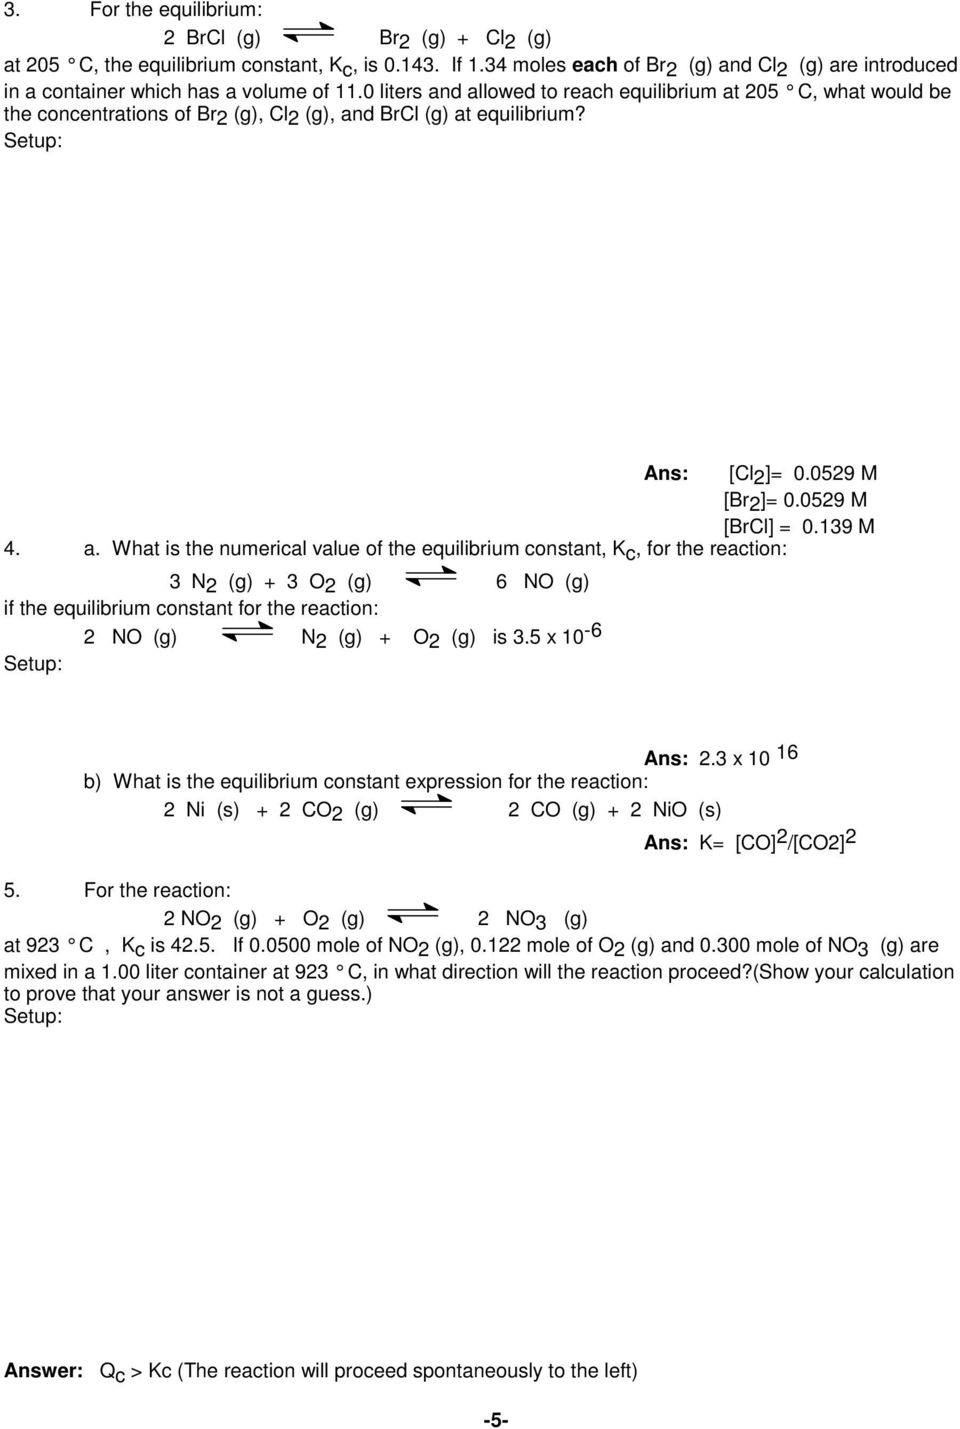 Worksheets Equilibrium Constant Worksheet worksheet chemical equilibrium pdf 5 x 10 6 ans 2 3 16 b what is the